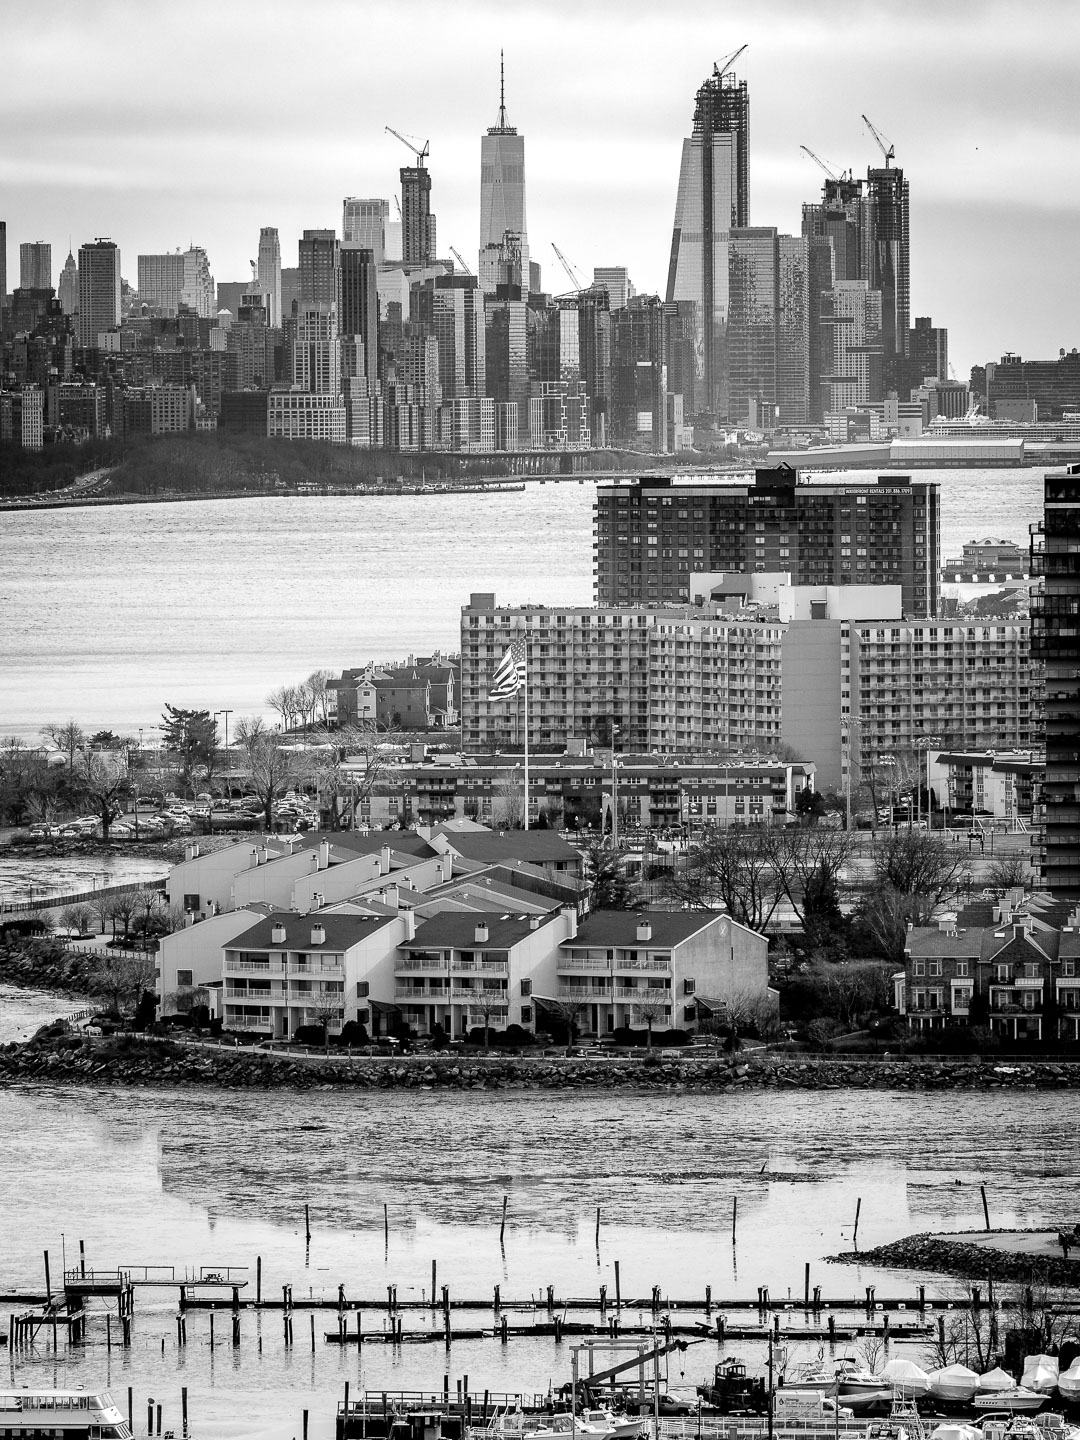 A New Jersey Harbor in front of New York's skyline